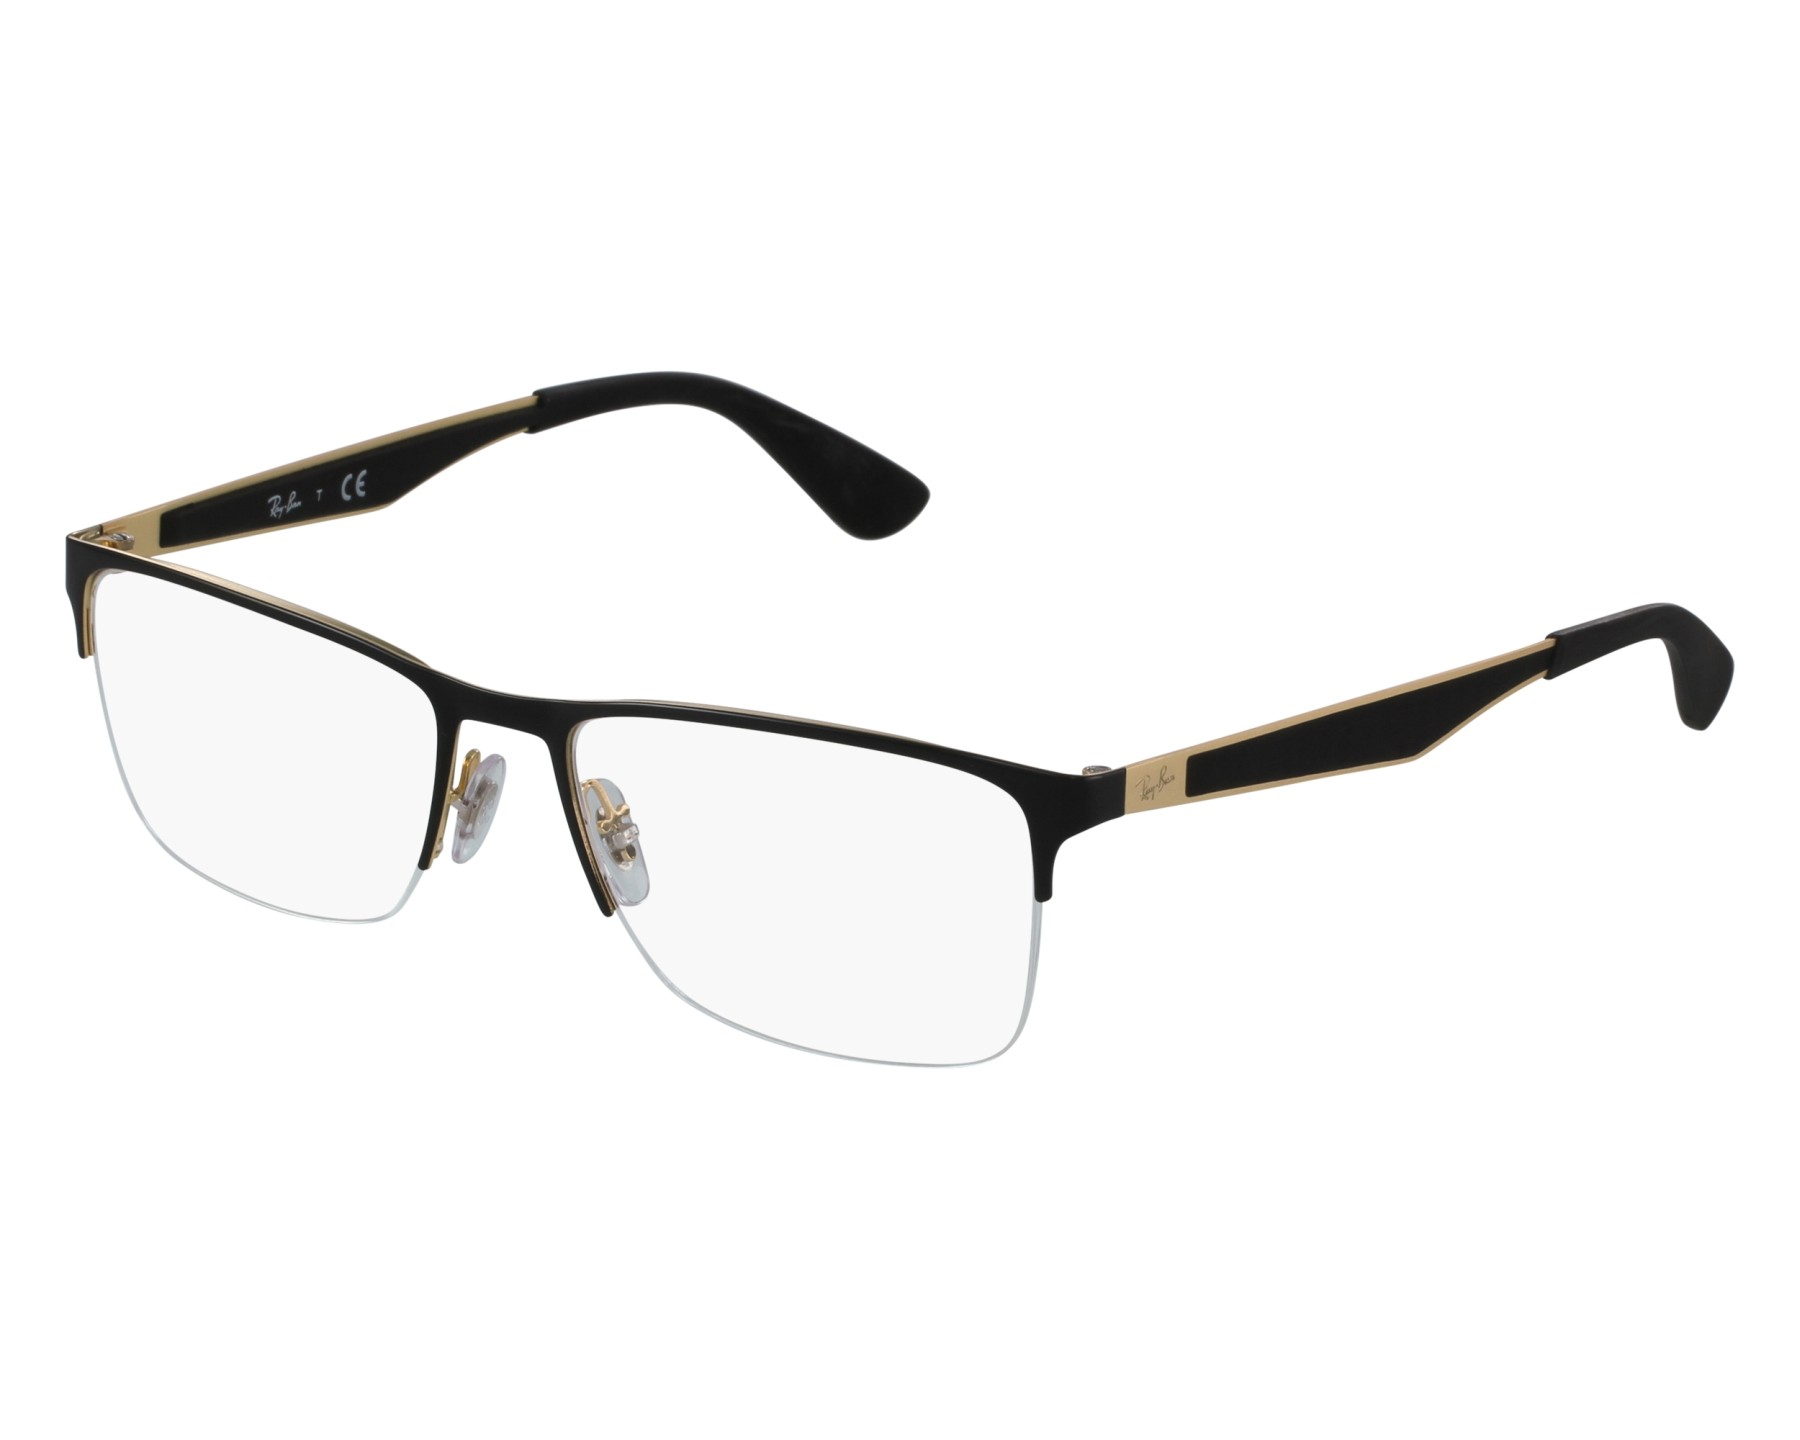 db87c7af96 eyeglasses Ray-Ban RX-6335 2890 - Black Gold front view